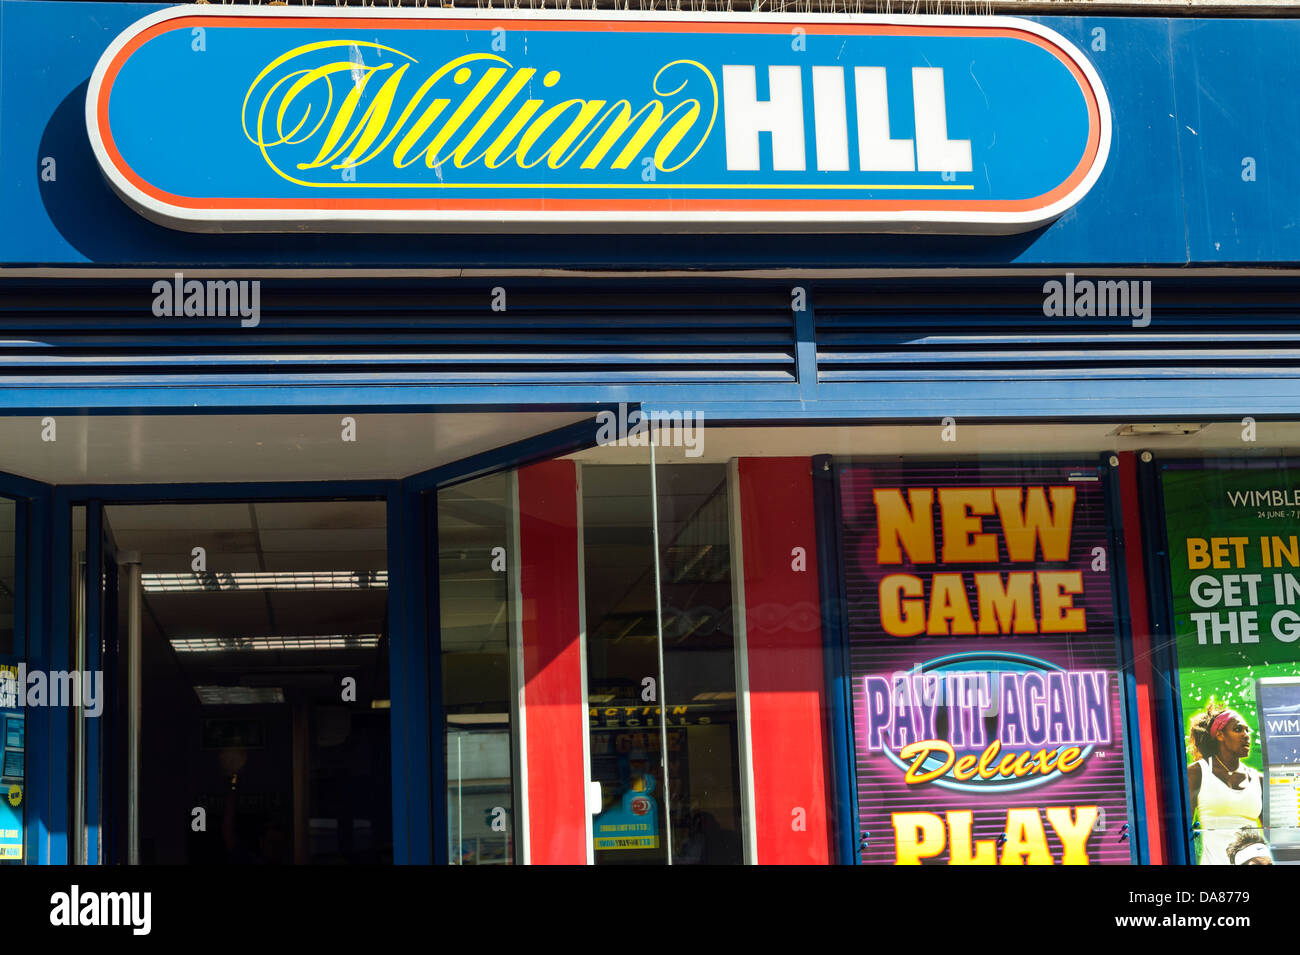 William Hill bookmakers, UK. - Stock Image